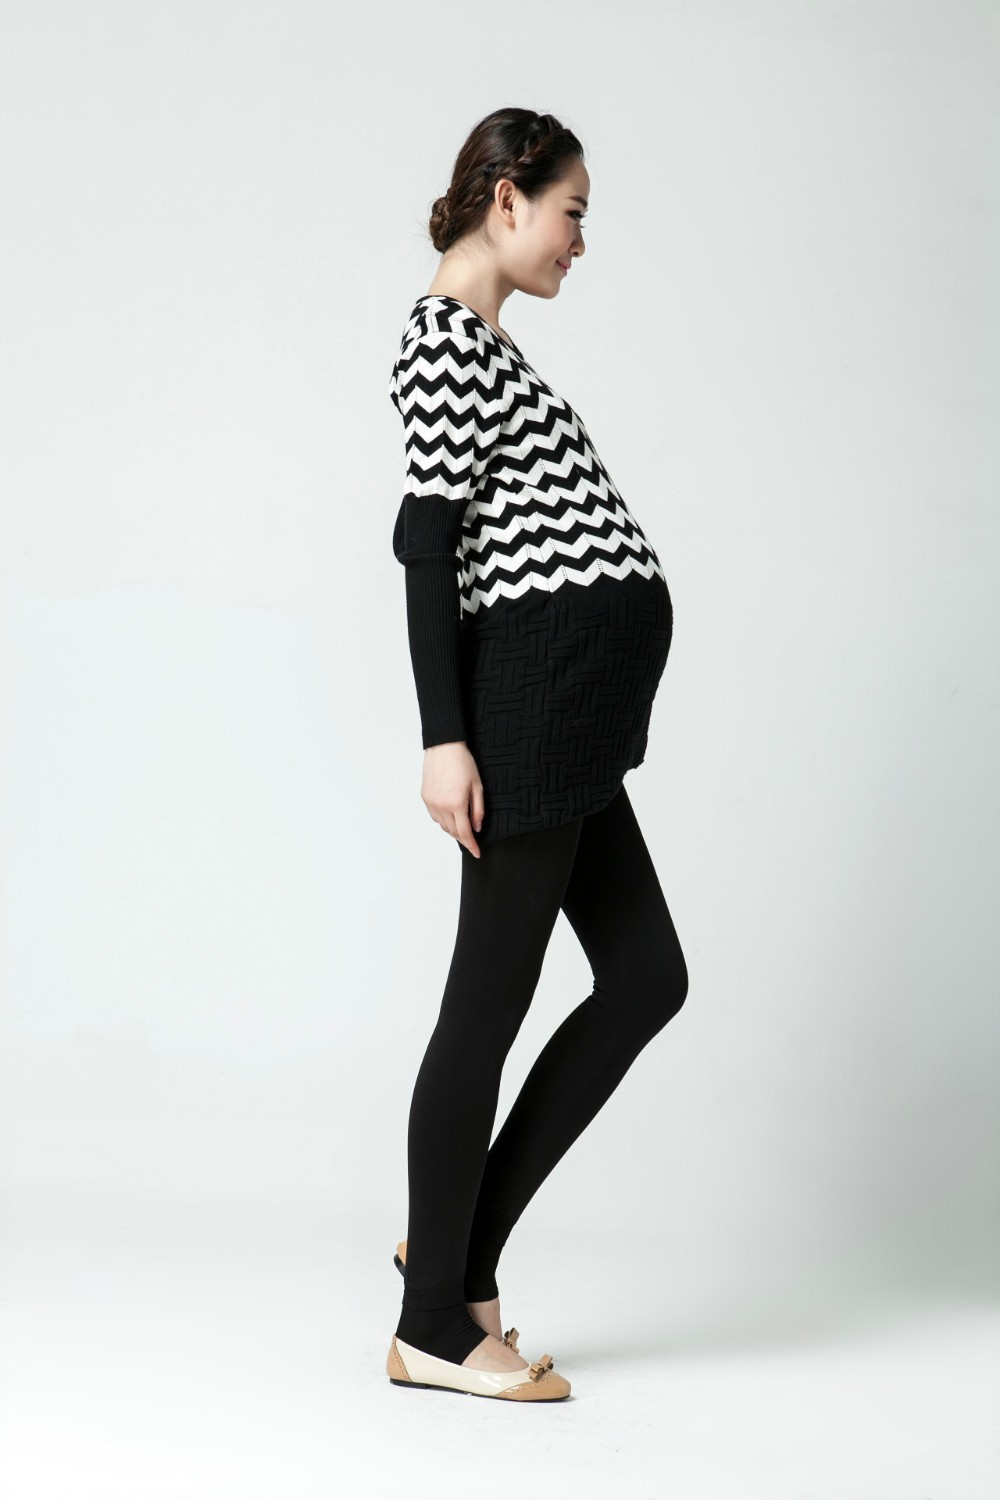 Women clothing maternity clothes winter Leggings thickened with velvet pregnant women trousers warm pants 9